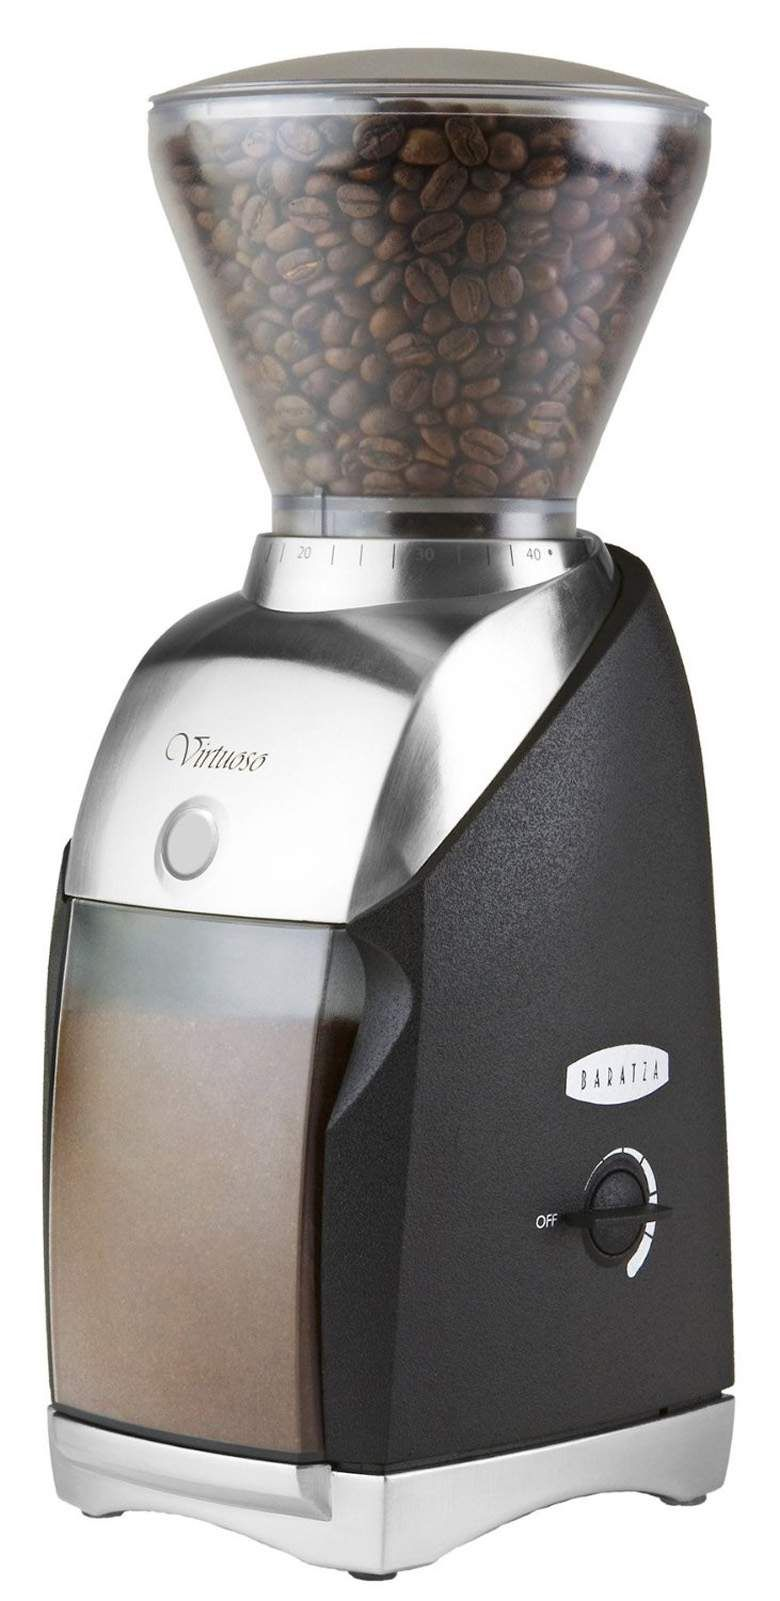 Baratza Virtuoso Burr Coffee Grinder Conical Check Out This Great Hario Ceramic Slim Mss 1b Article Coffeegrinders